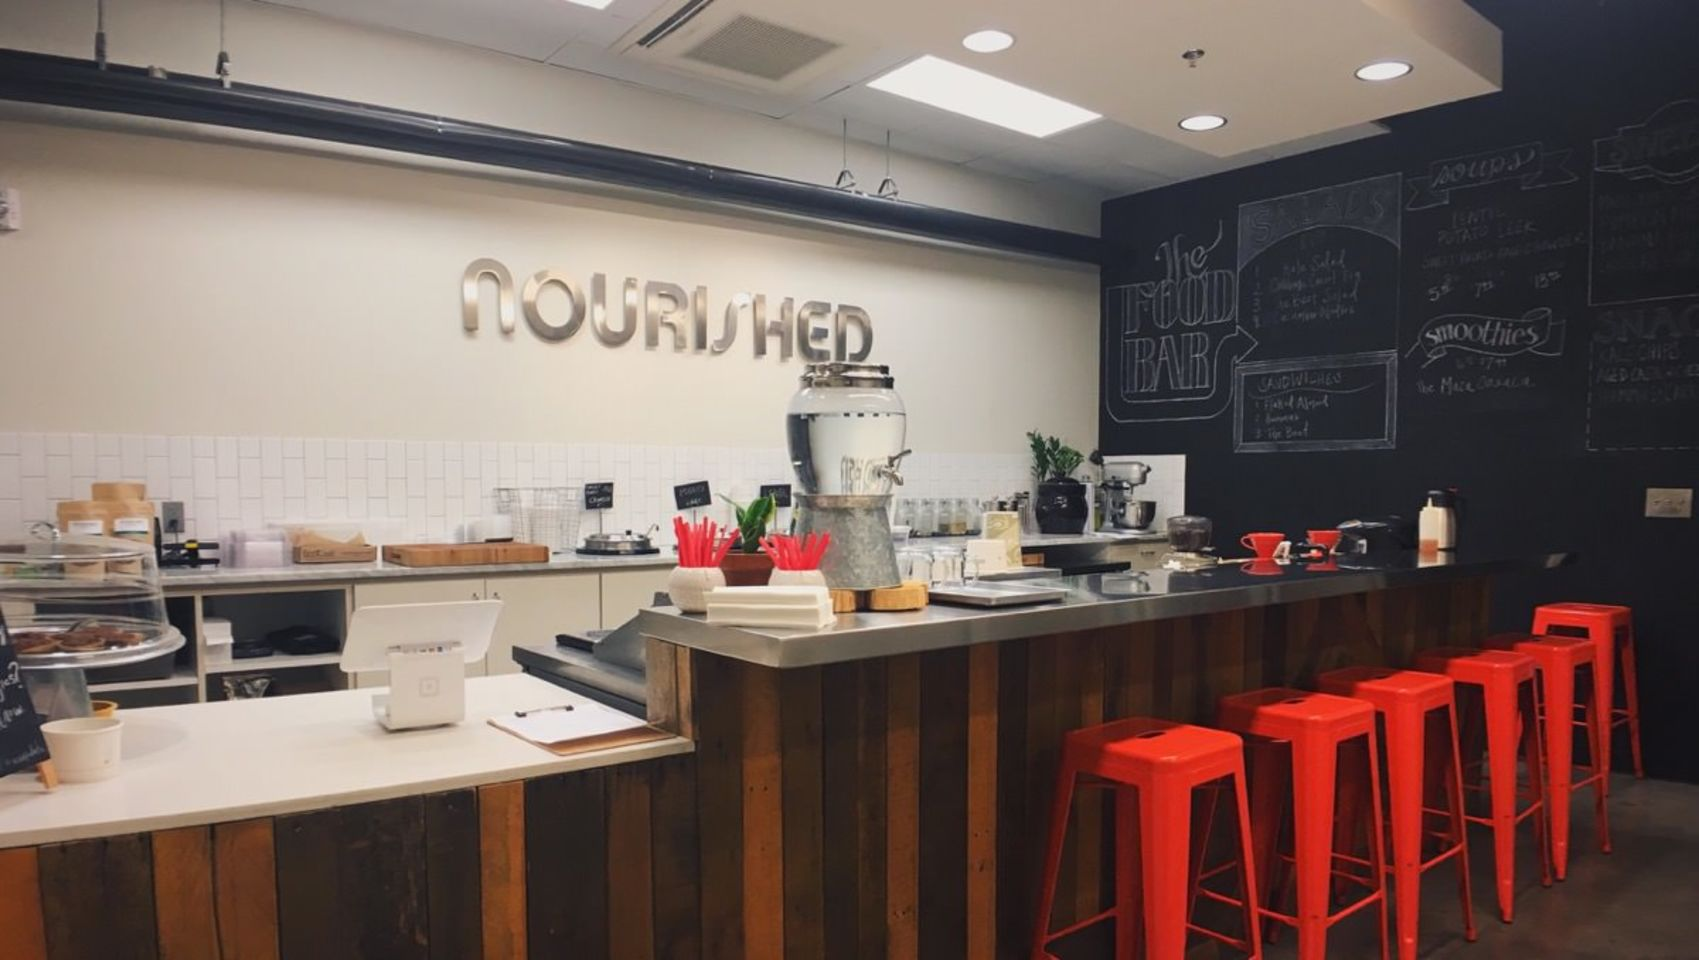 A photo of Nourished Food Bar